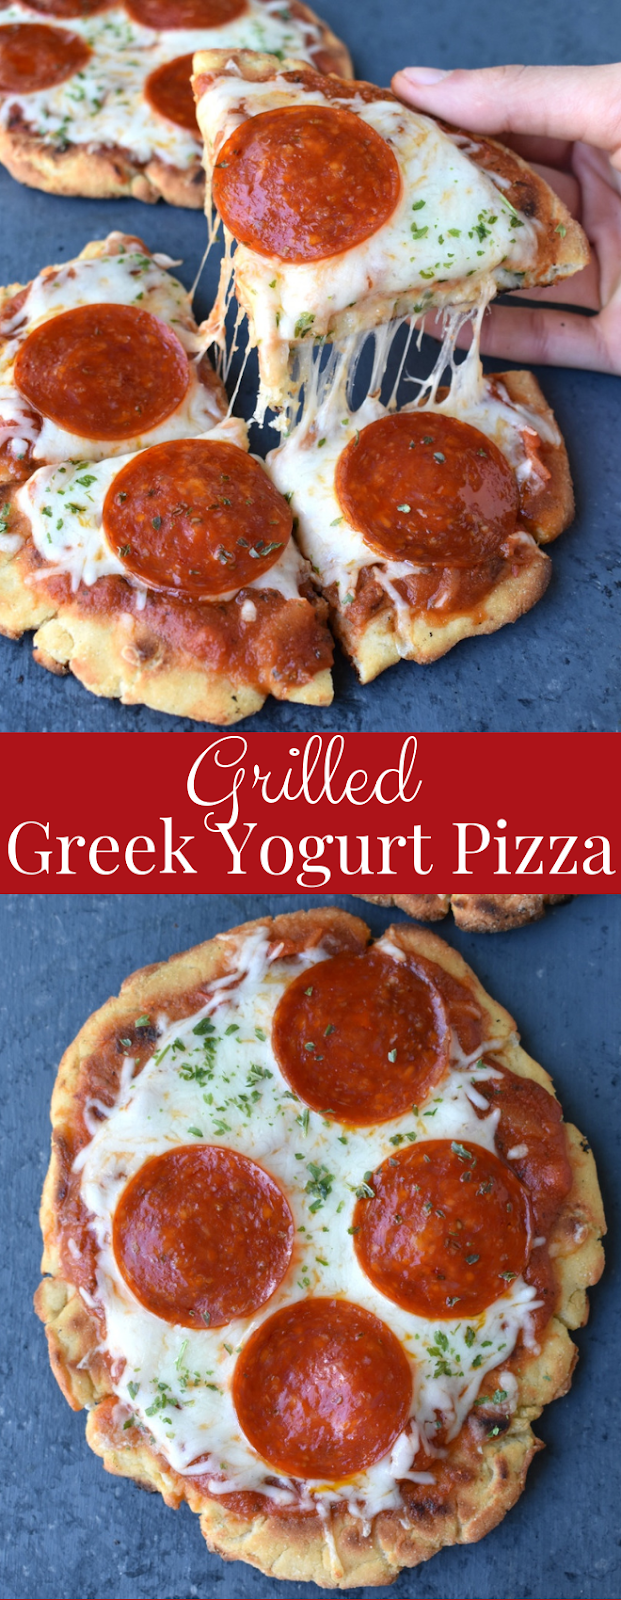 Grilled Greek Yogurt Pizza recipe